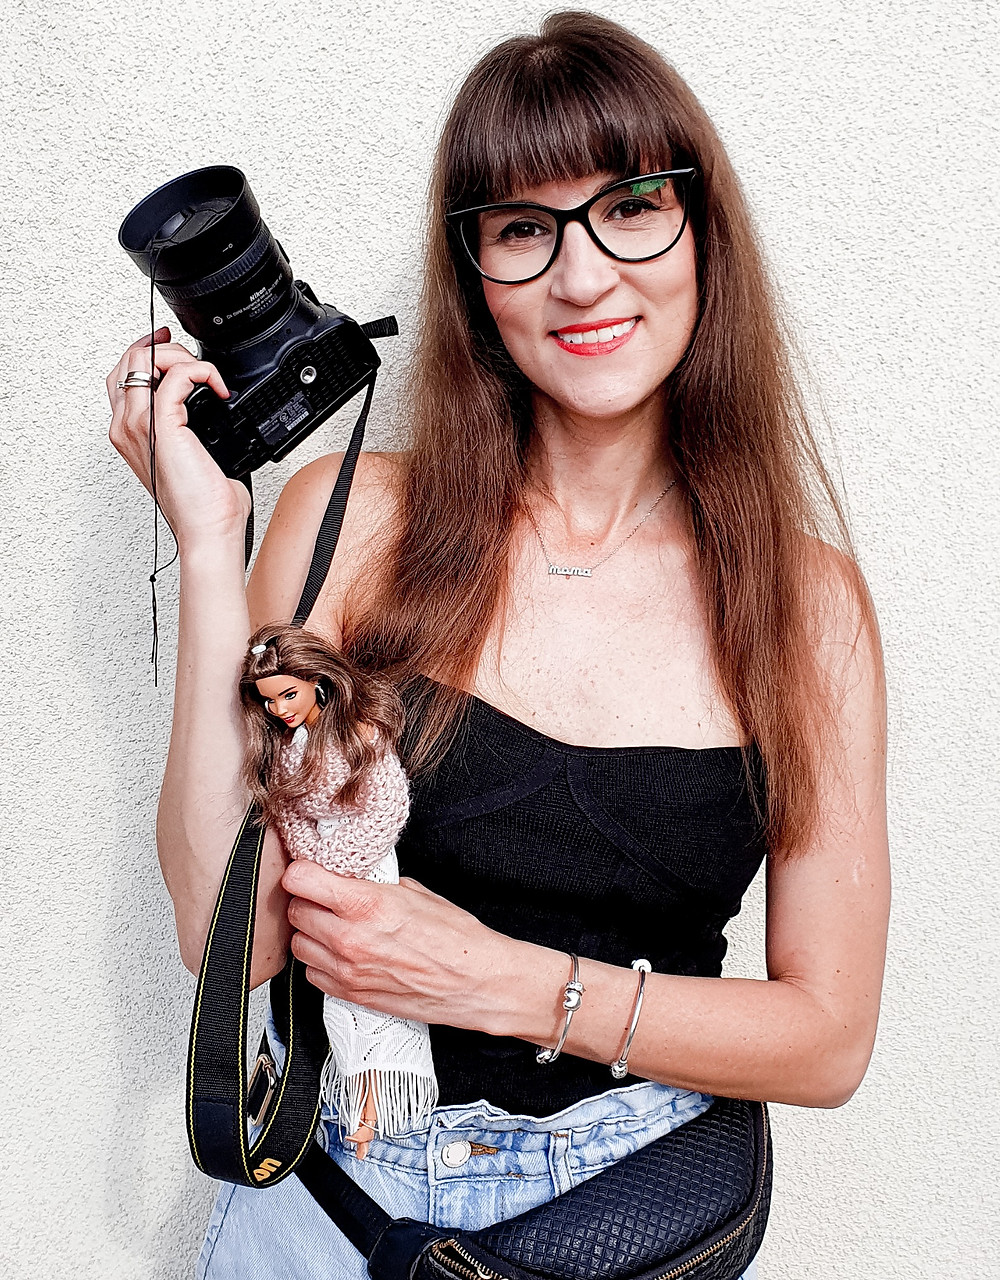 Doll Photographer Izabela Kwella with her camera and 12 inch fashion barbie doll toy